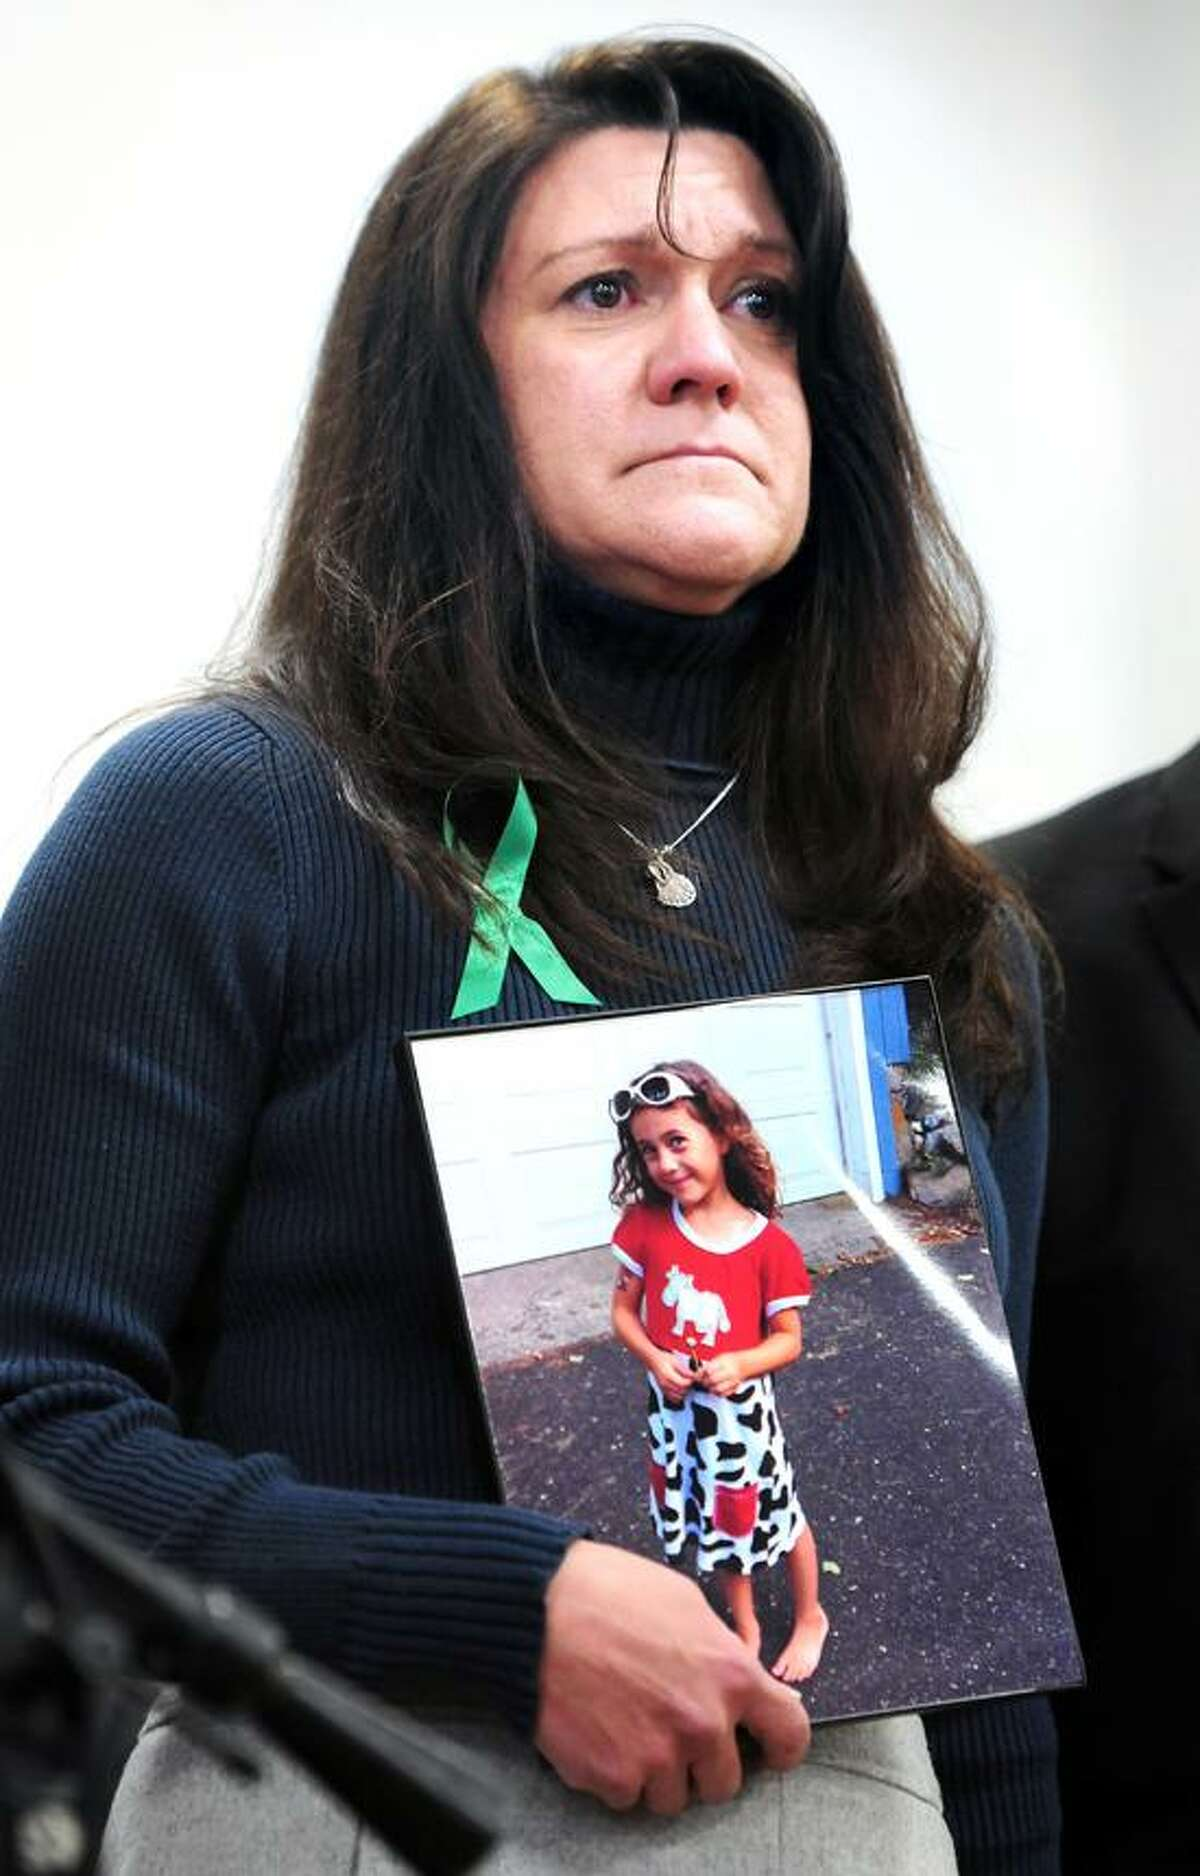 Jennifer Hensel holds a photograph of her daughter, Avielle, at a press conference announcing the launch of Sandy Hook Promise at Edmond Town Hall in Newtown on 1/14/2013. Photo by Arnold Gold/New Haven Register